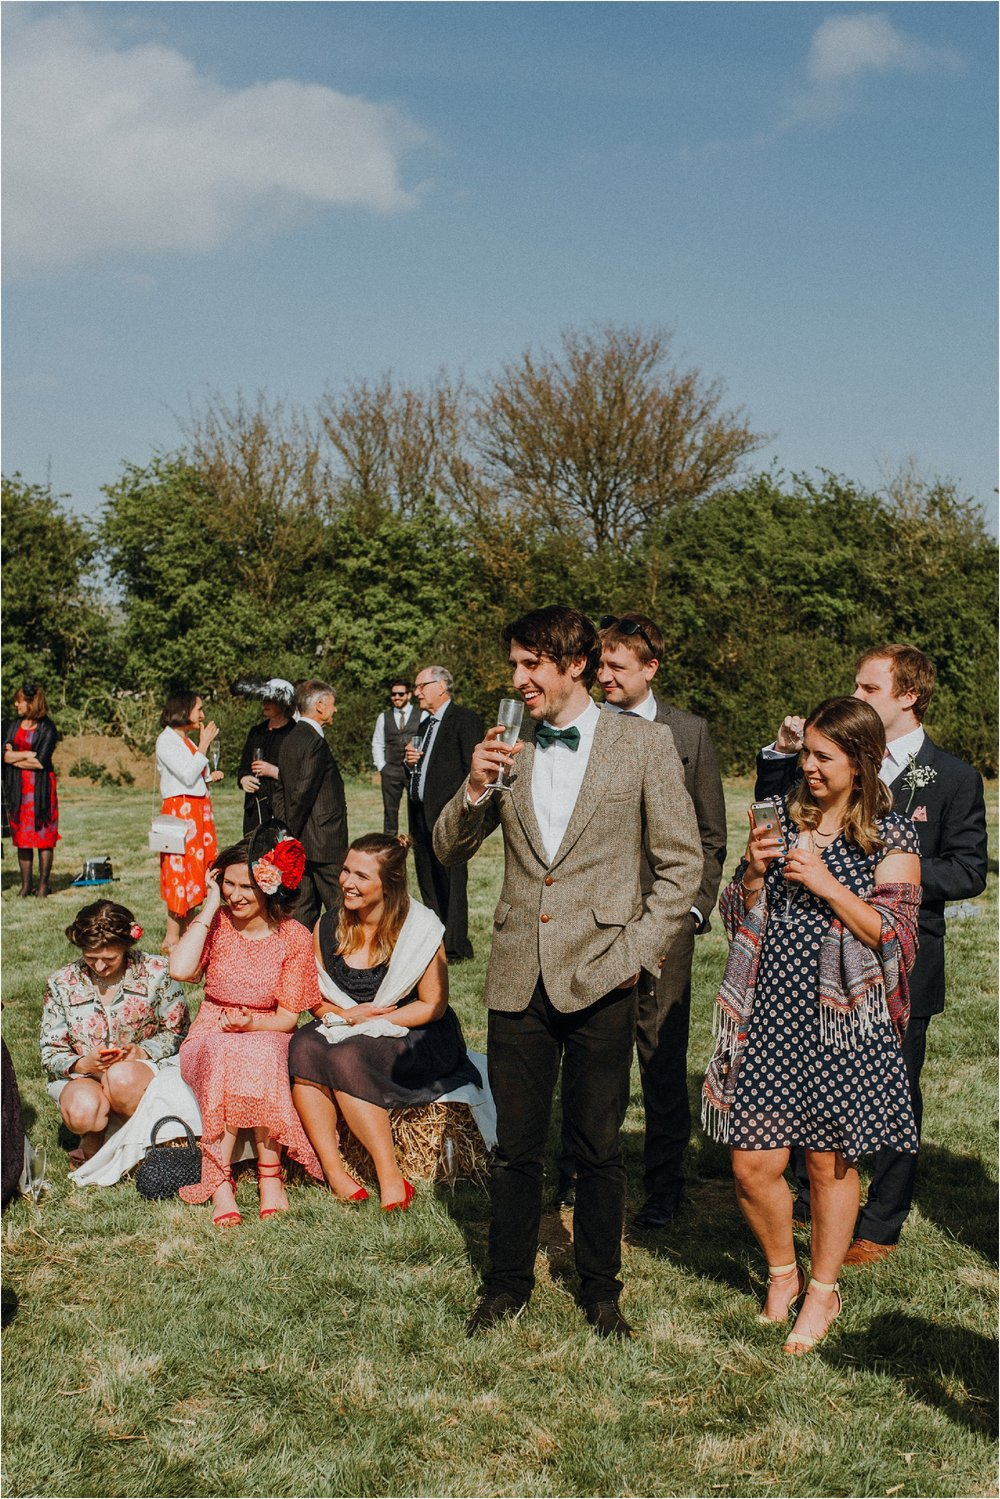 Outdoor-country-wedding-Edinburgh-photographer__0099.jpg